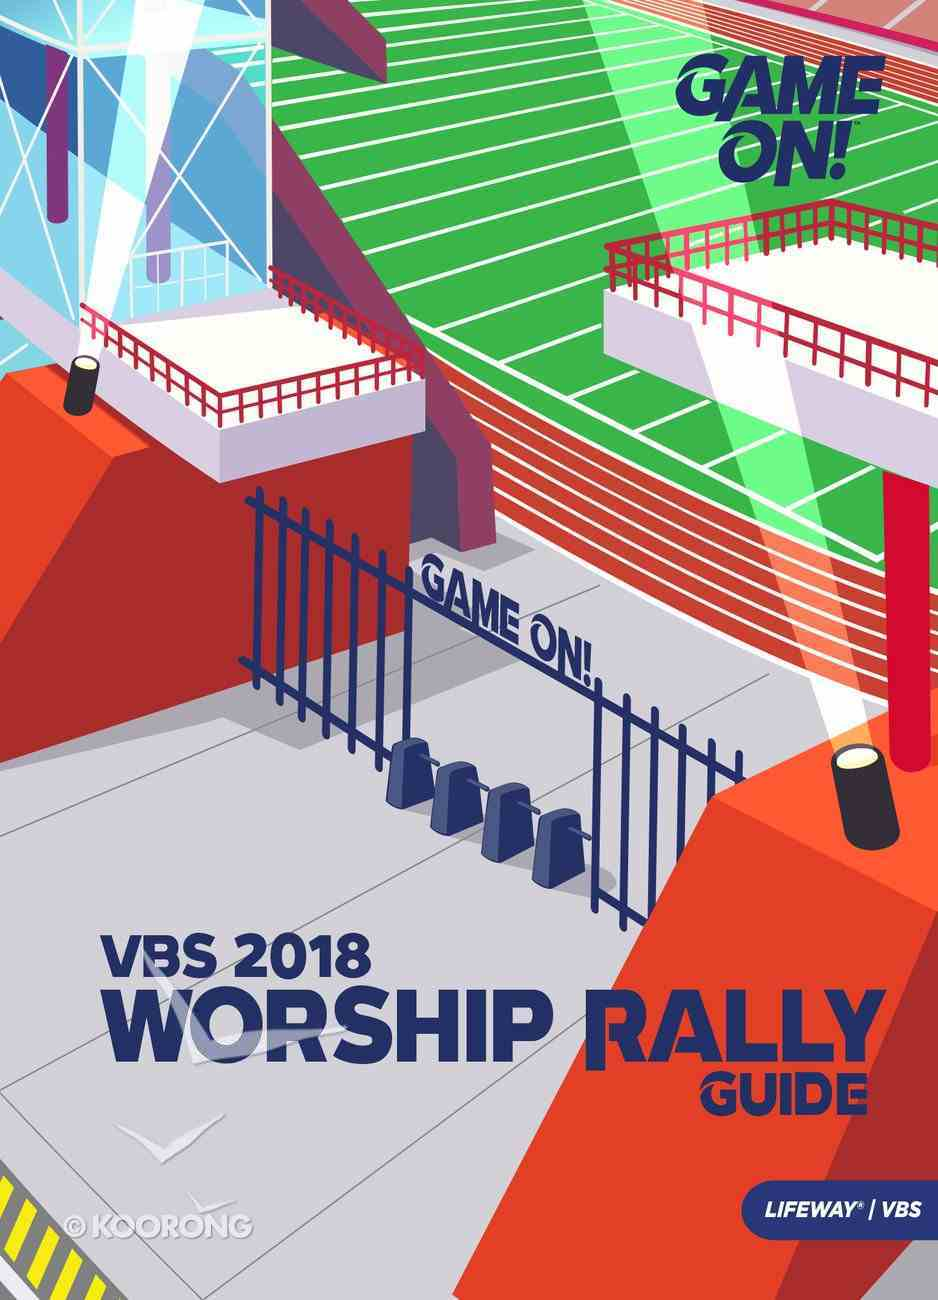 Worship Rally Guide (Vbs 2018 Game On! Series) Paperback